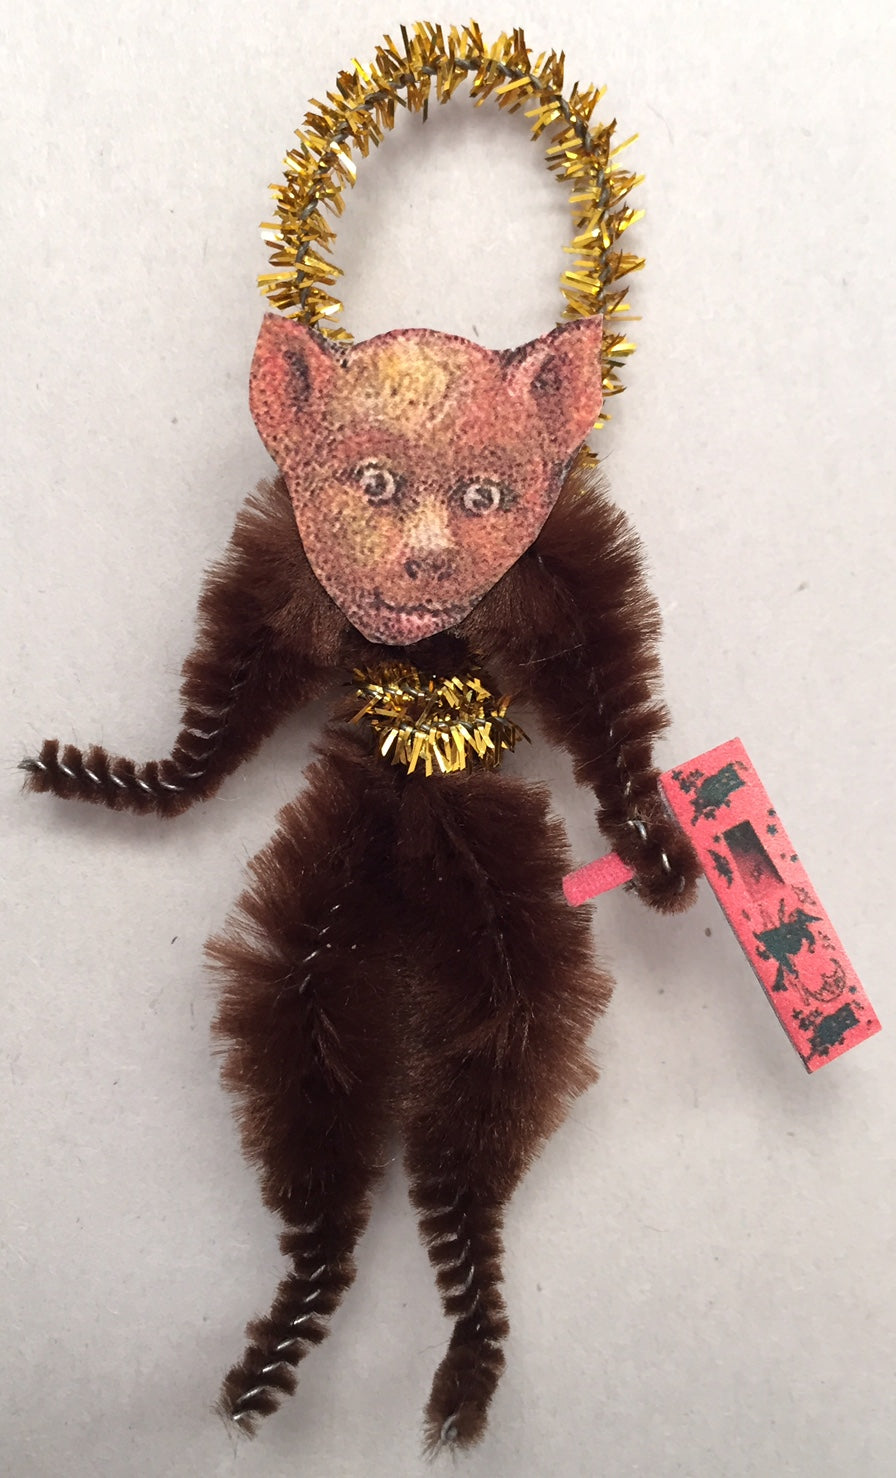 Baubles & Brew Bat Chenille Figure Ornament